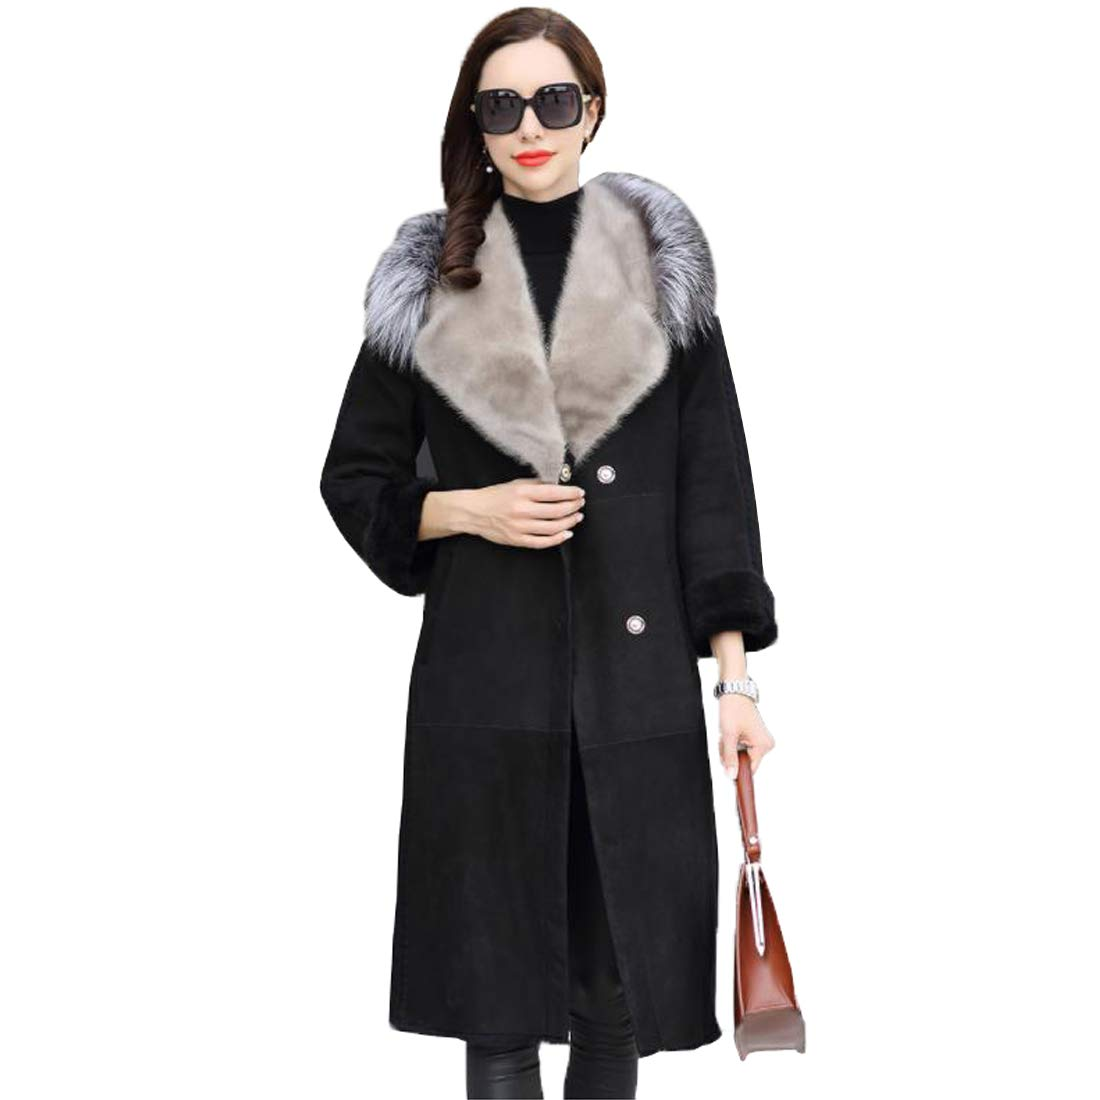 Black Long Real Sheepskin Fur Trench Coats for Women with Luxury Fox and Mink Fur Collar